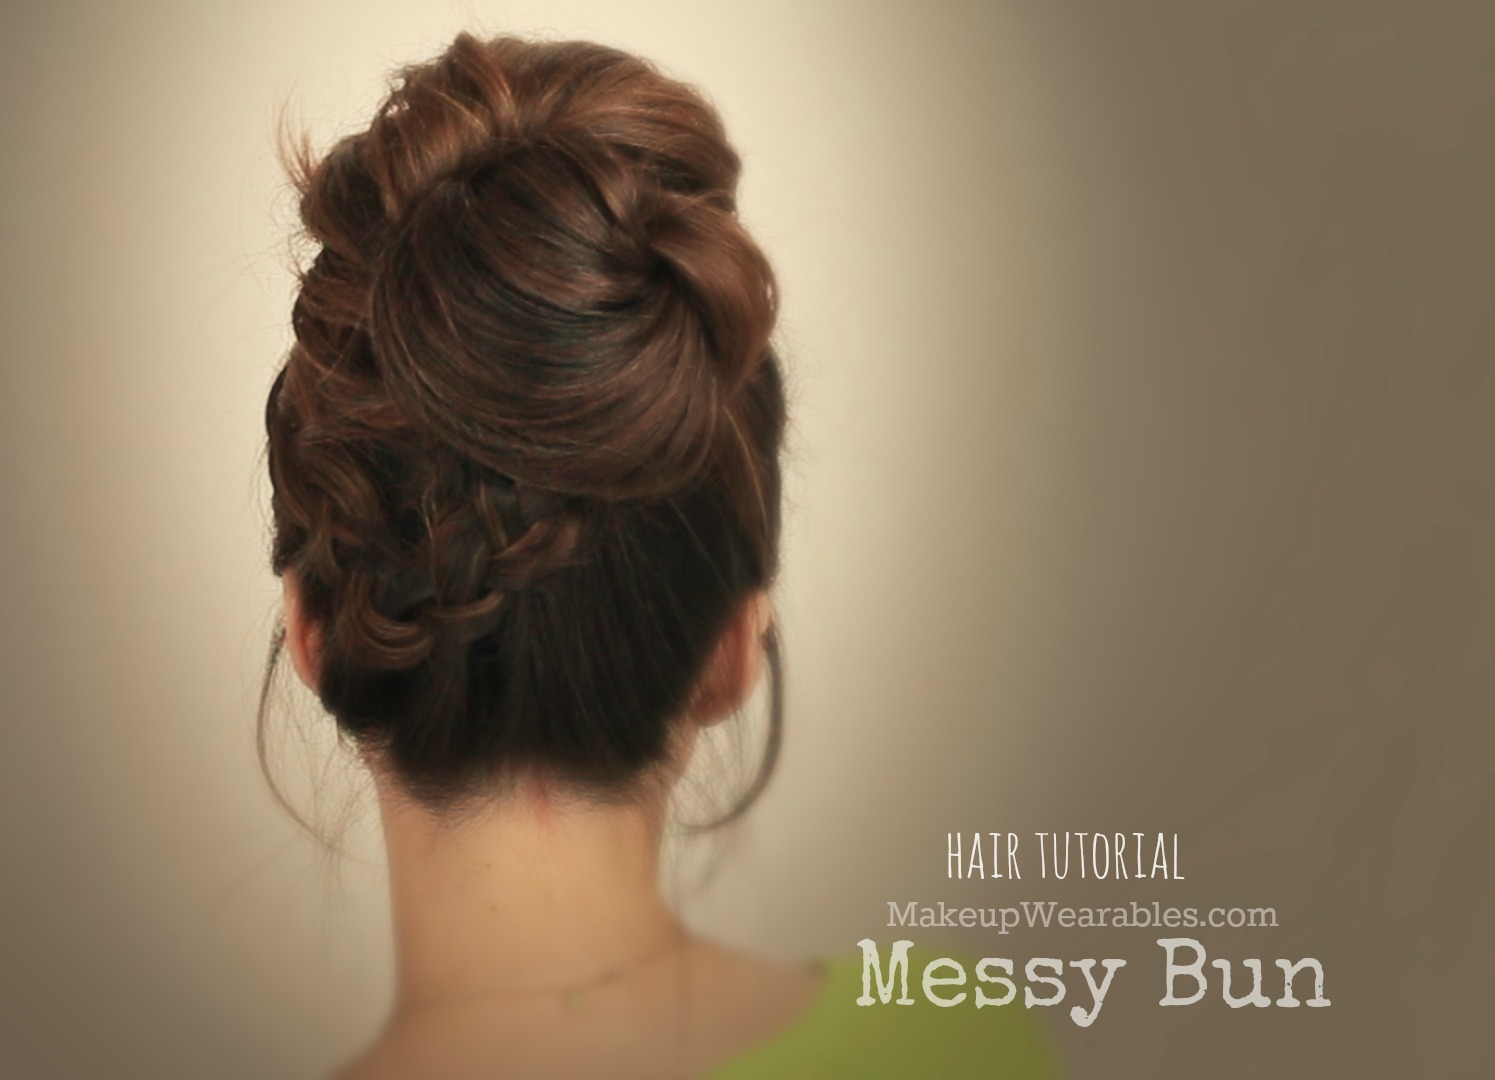 Cute Braided Bun Hairstyles For Short Hair : Cute messy bun quick everyday updo hairstyles hair